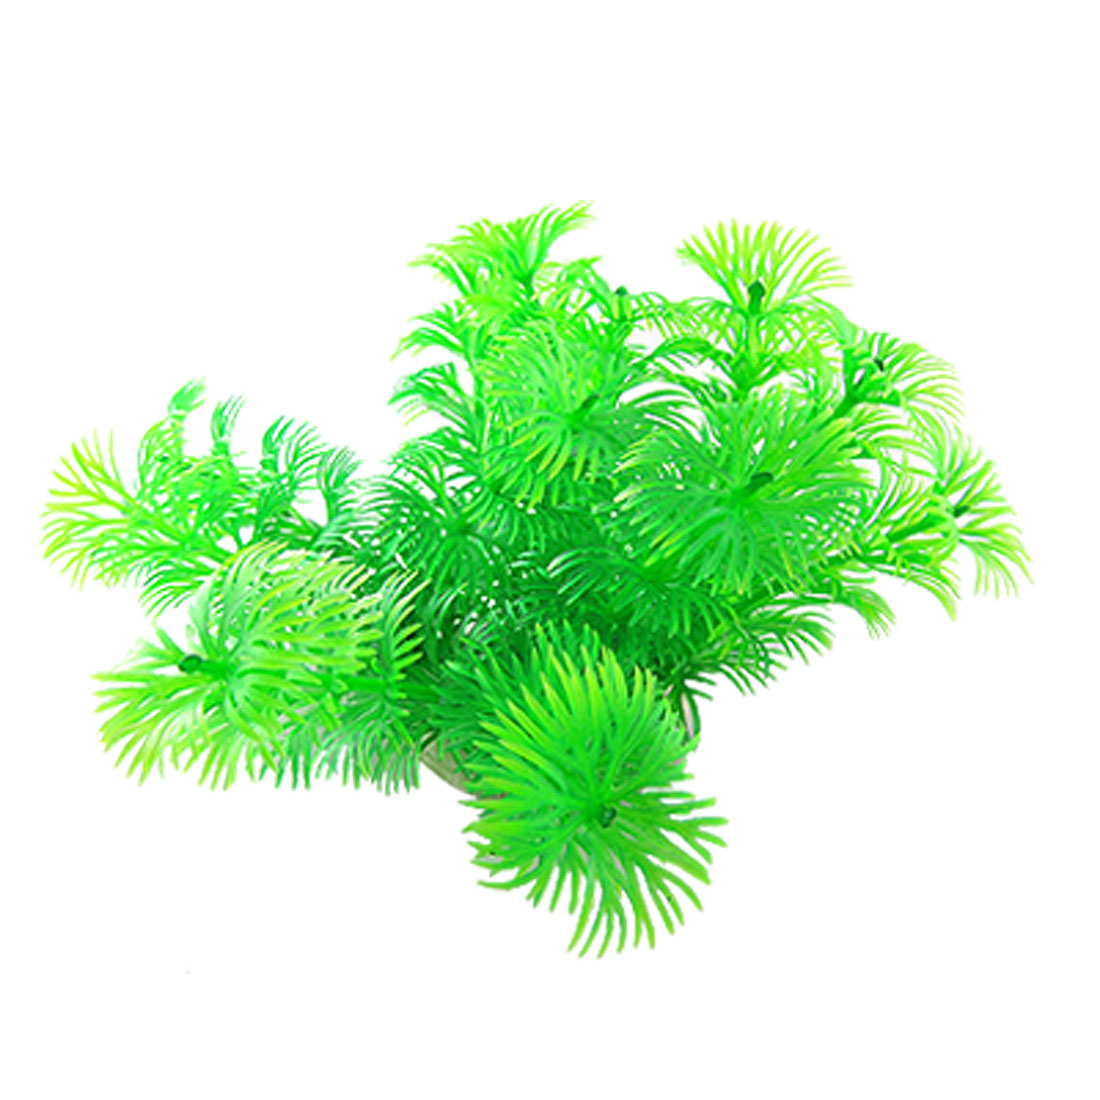 Hard Plastic Plant Aquarium Tank Ornament Grass